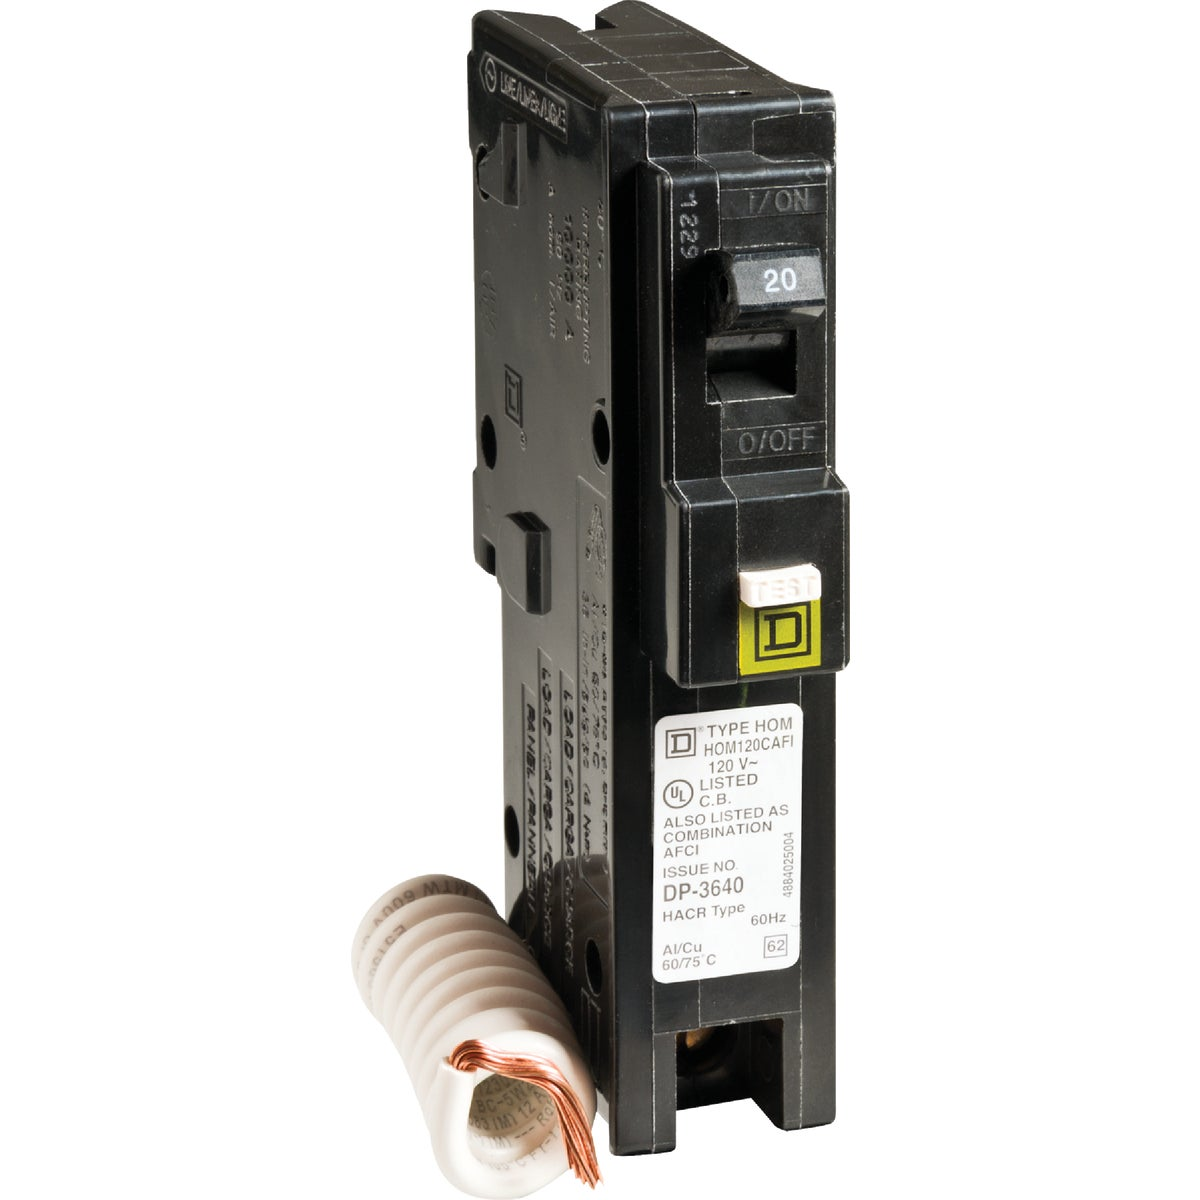 COMBO ARC FAULT BREAKER - HOM120CAFIC by Square D Co